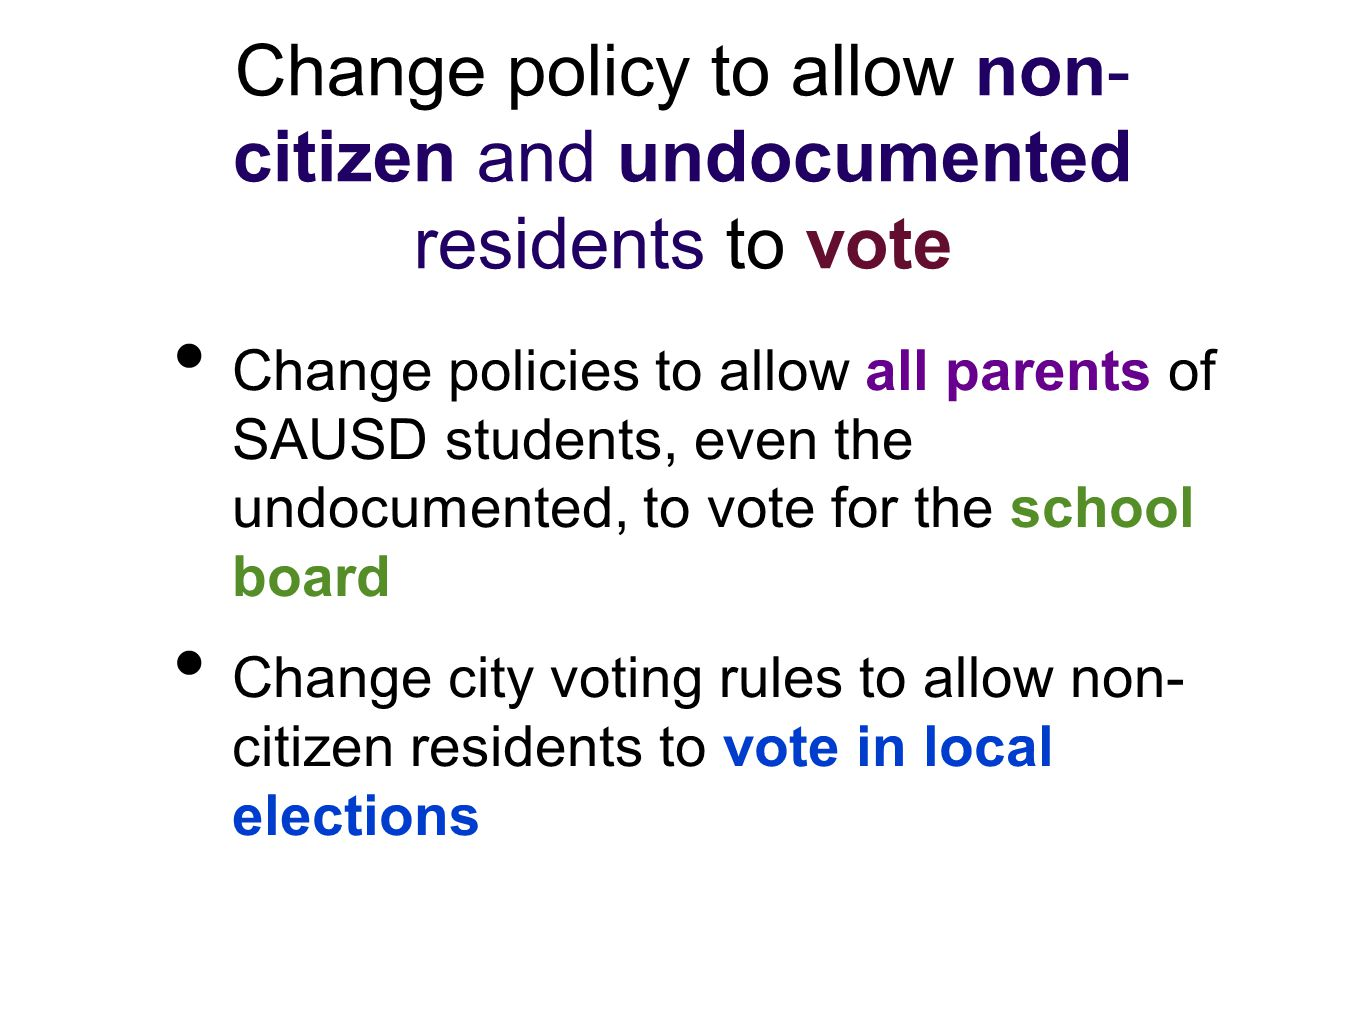 Change policies to allow all parents of SAUSD students, even the undocumented, to vote for the school board Change city voting rules to allow non- citizen residents to vote in local elections Change policy to allow non- citizen and undocumented residents to vote